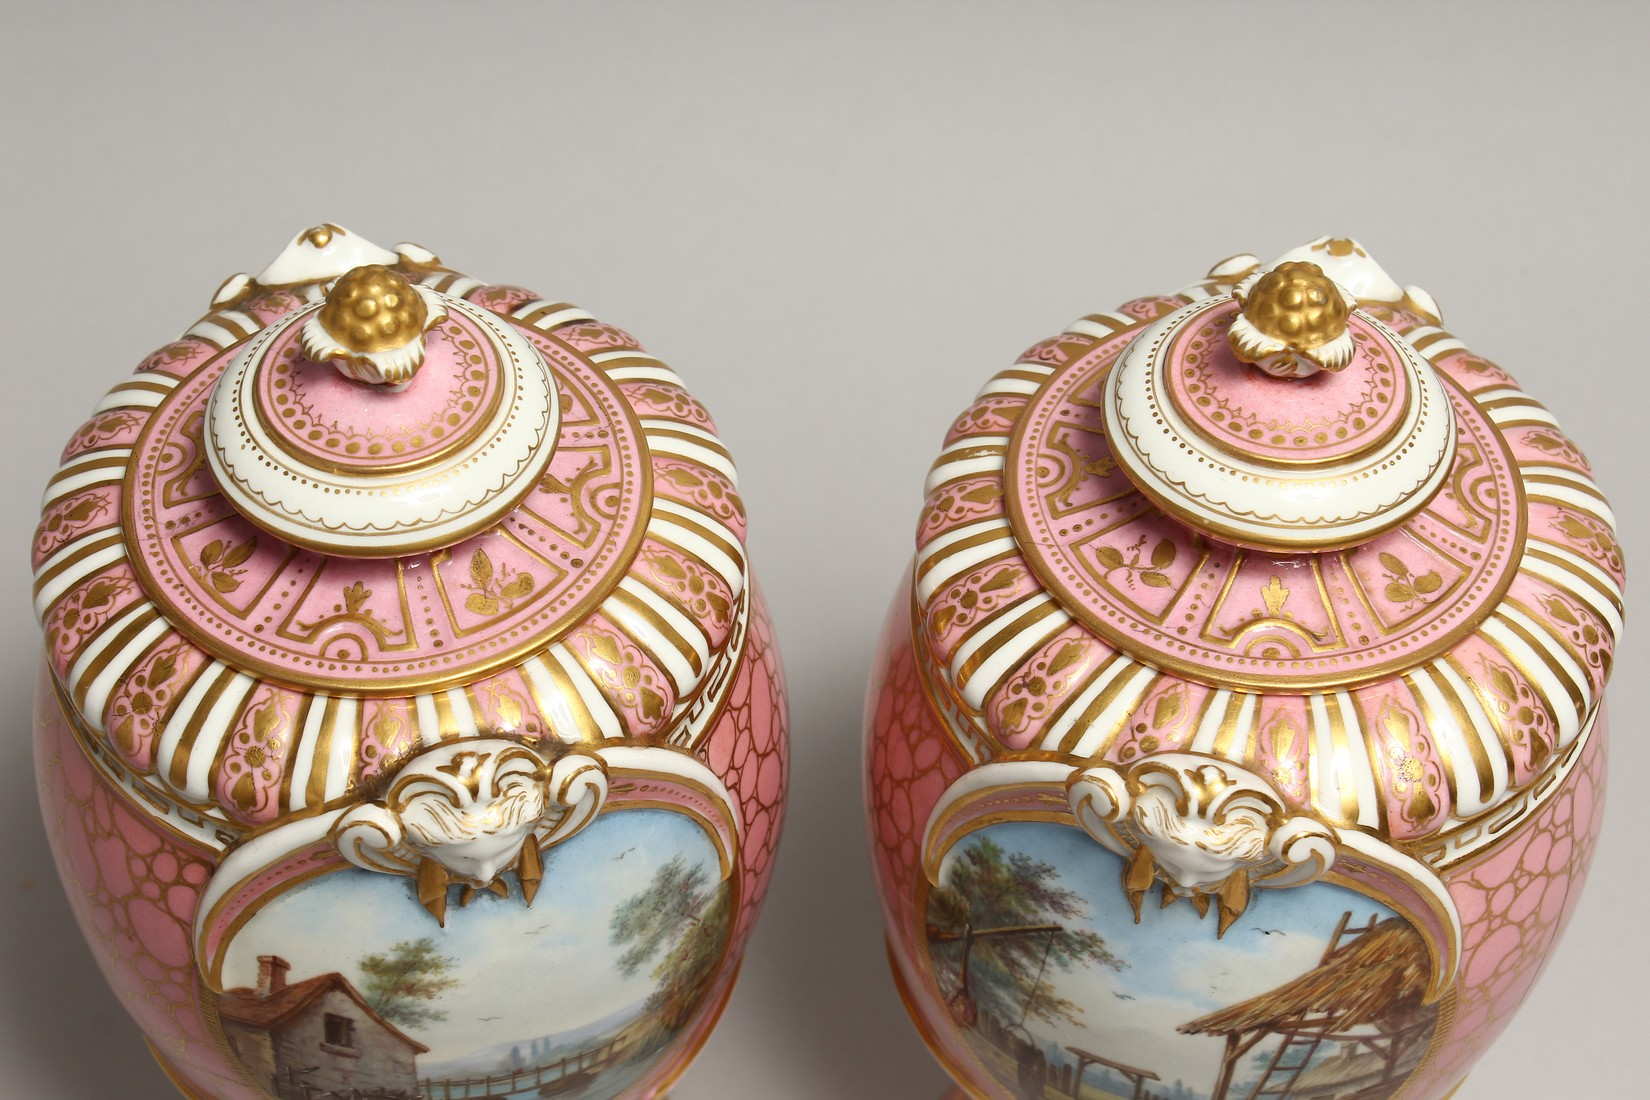 A VERY GOOD PAIR OF SEVRES PINK GROUND VASES AND COVERS each painted with reverse panels of figures, - Image 6 of 12